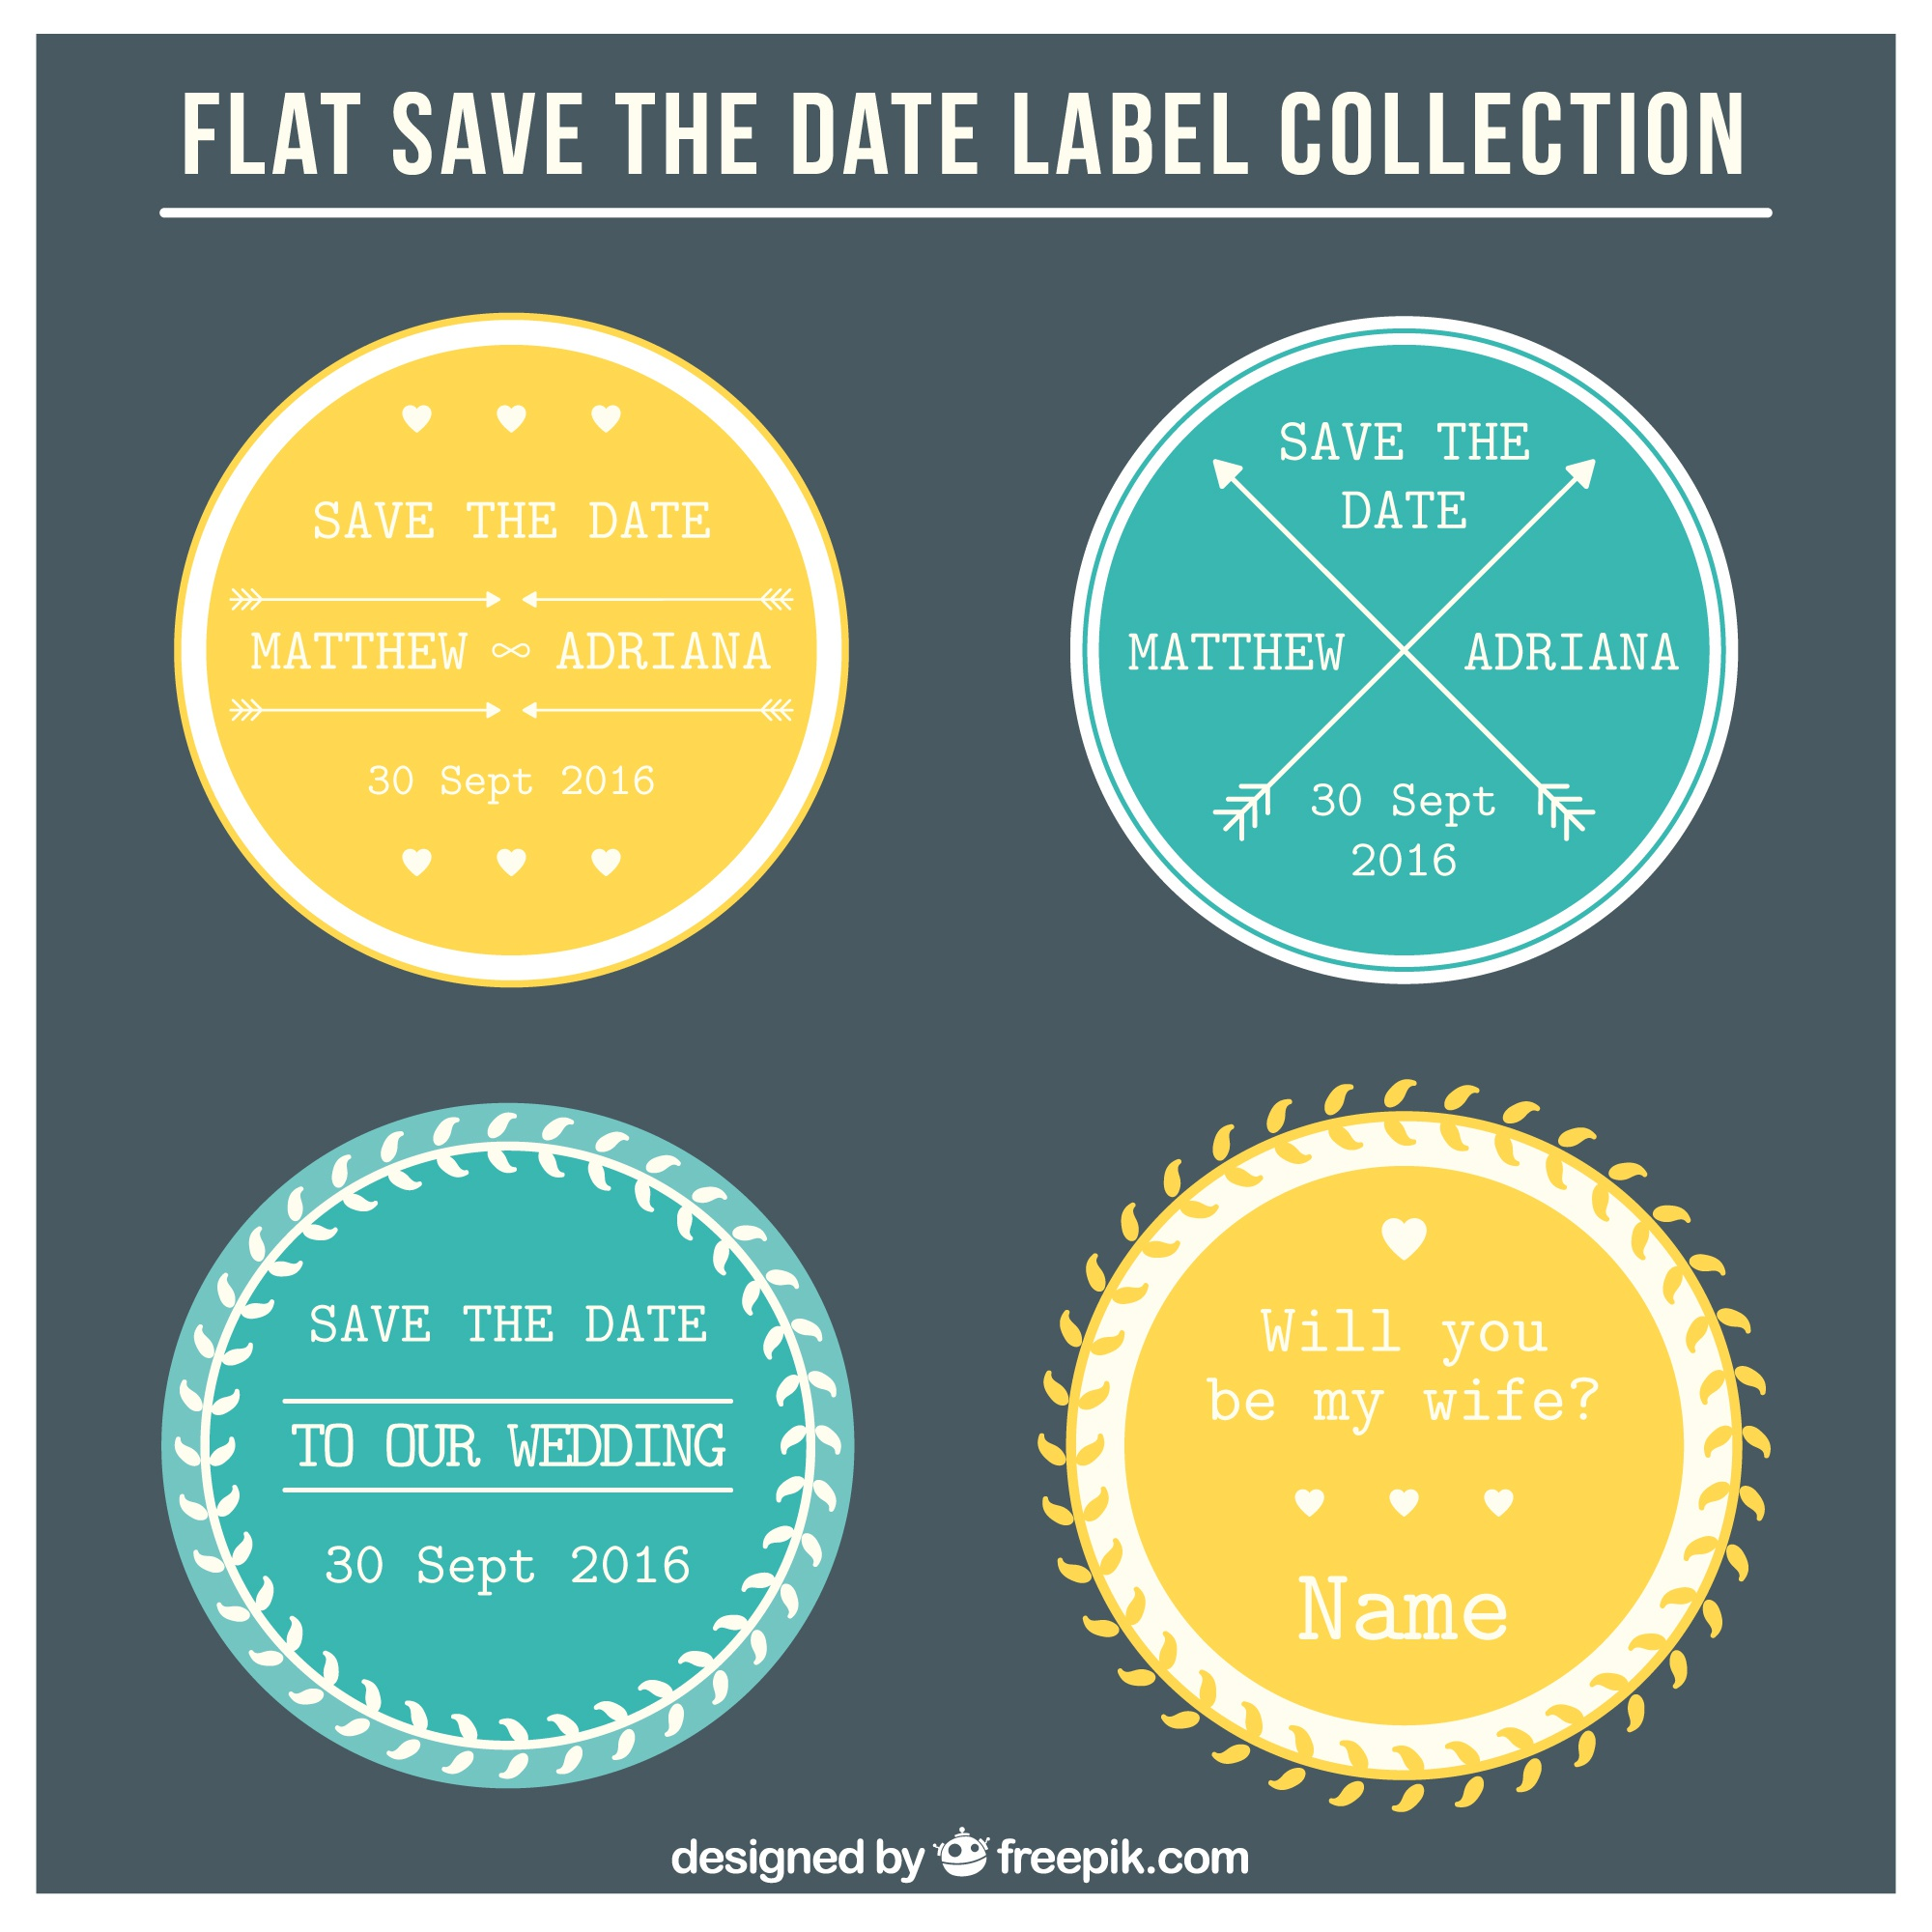 Four circular wedding labels